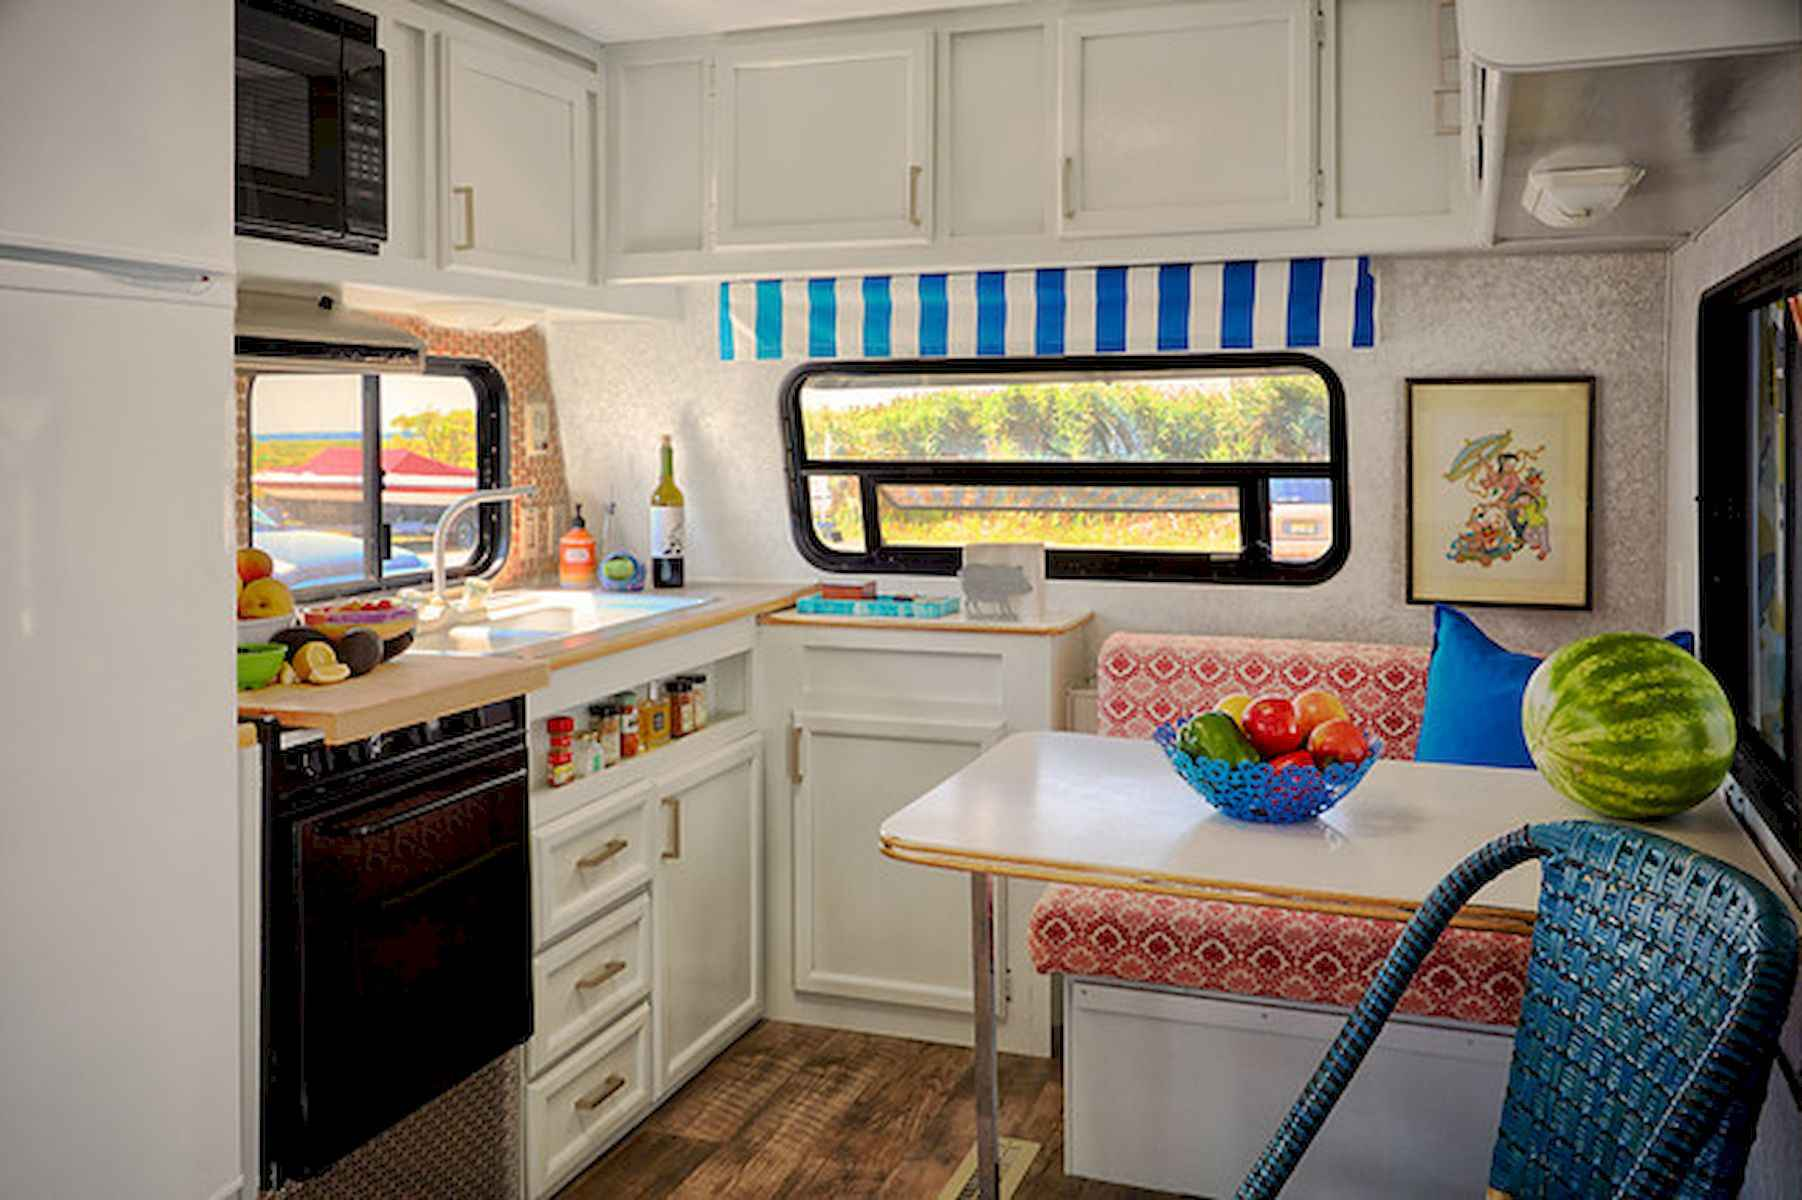 70 Stunning RV Living Camper Room Ideas Decorations Make Your Summer Awesome (36)